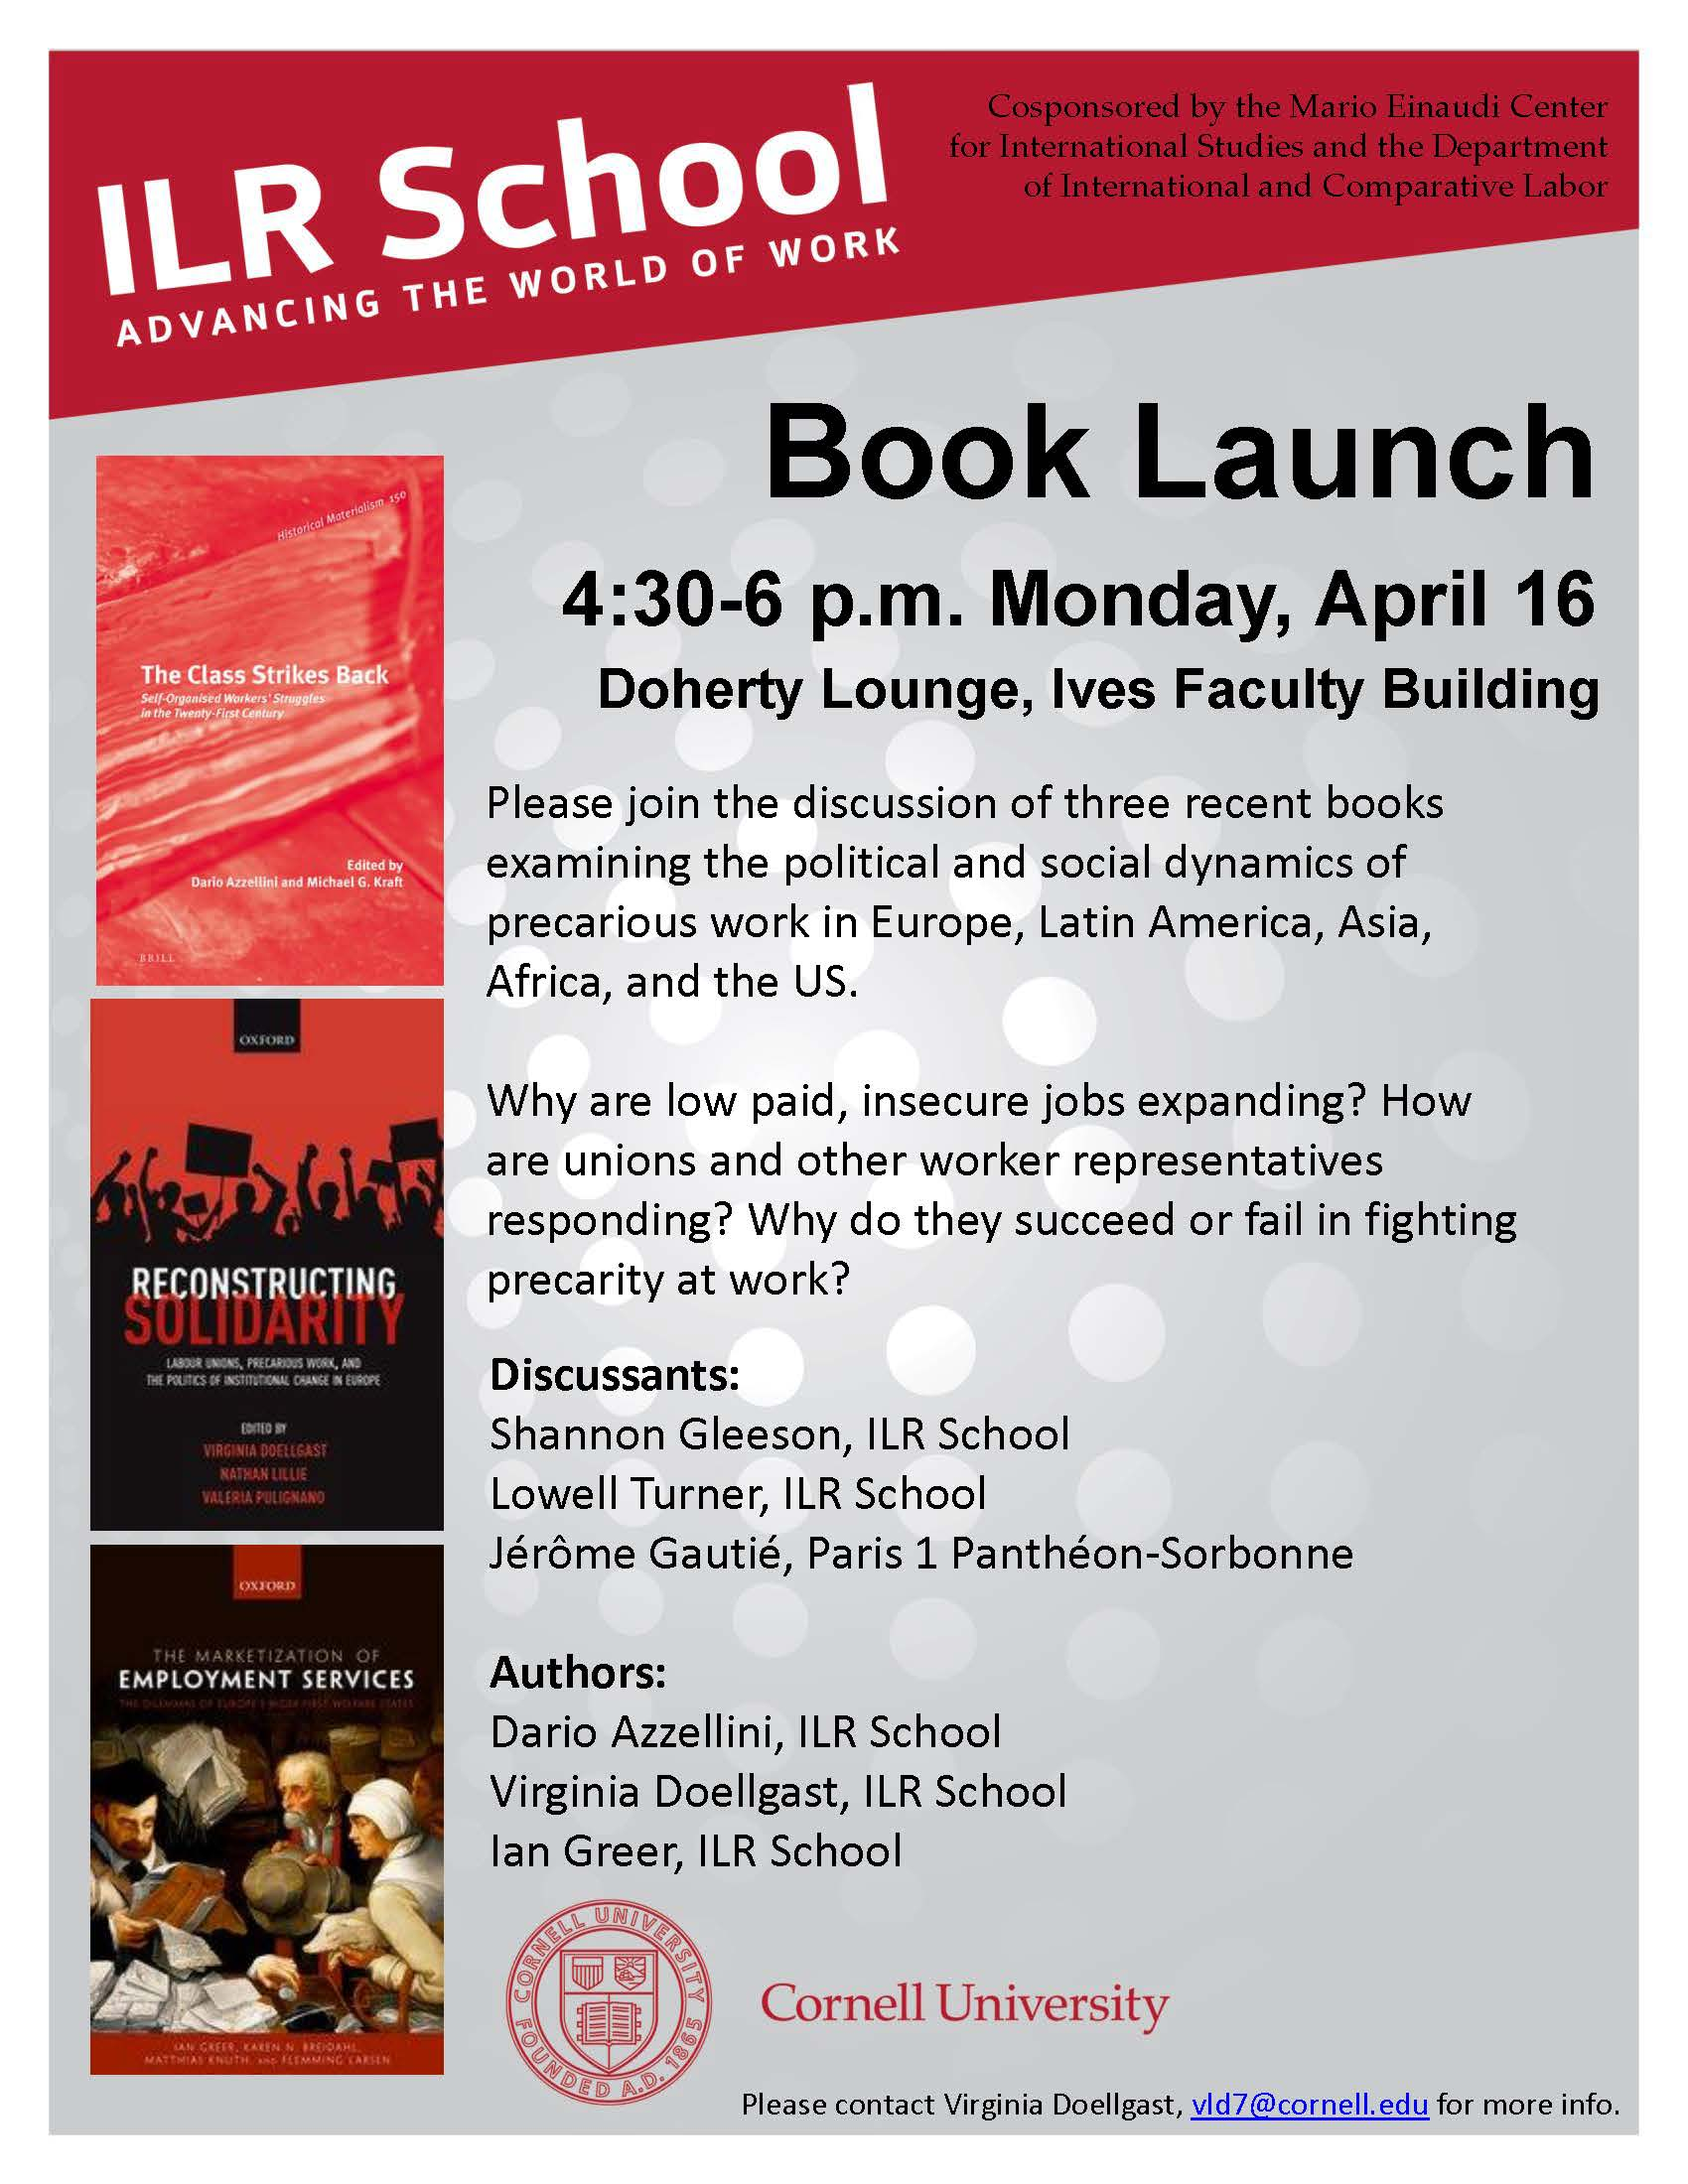 ILR Book Launch on Precarious Work